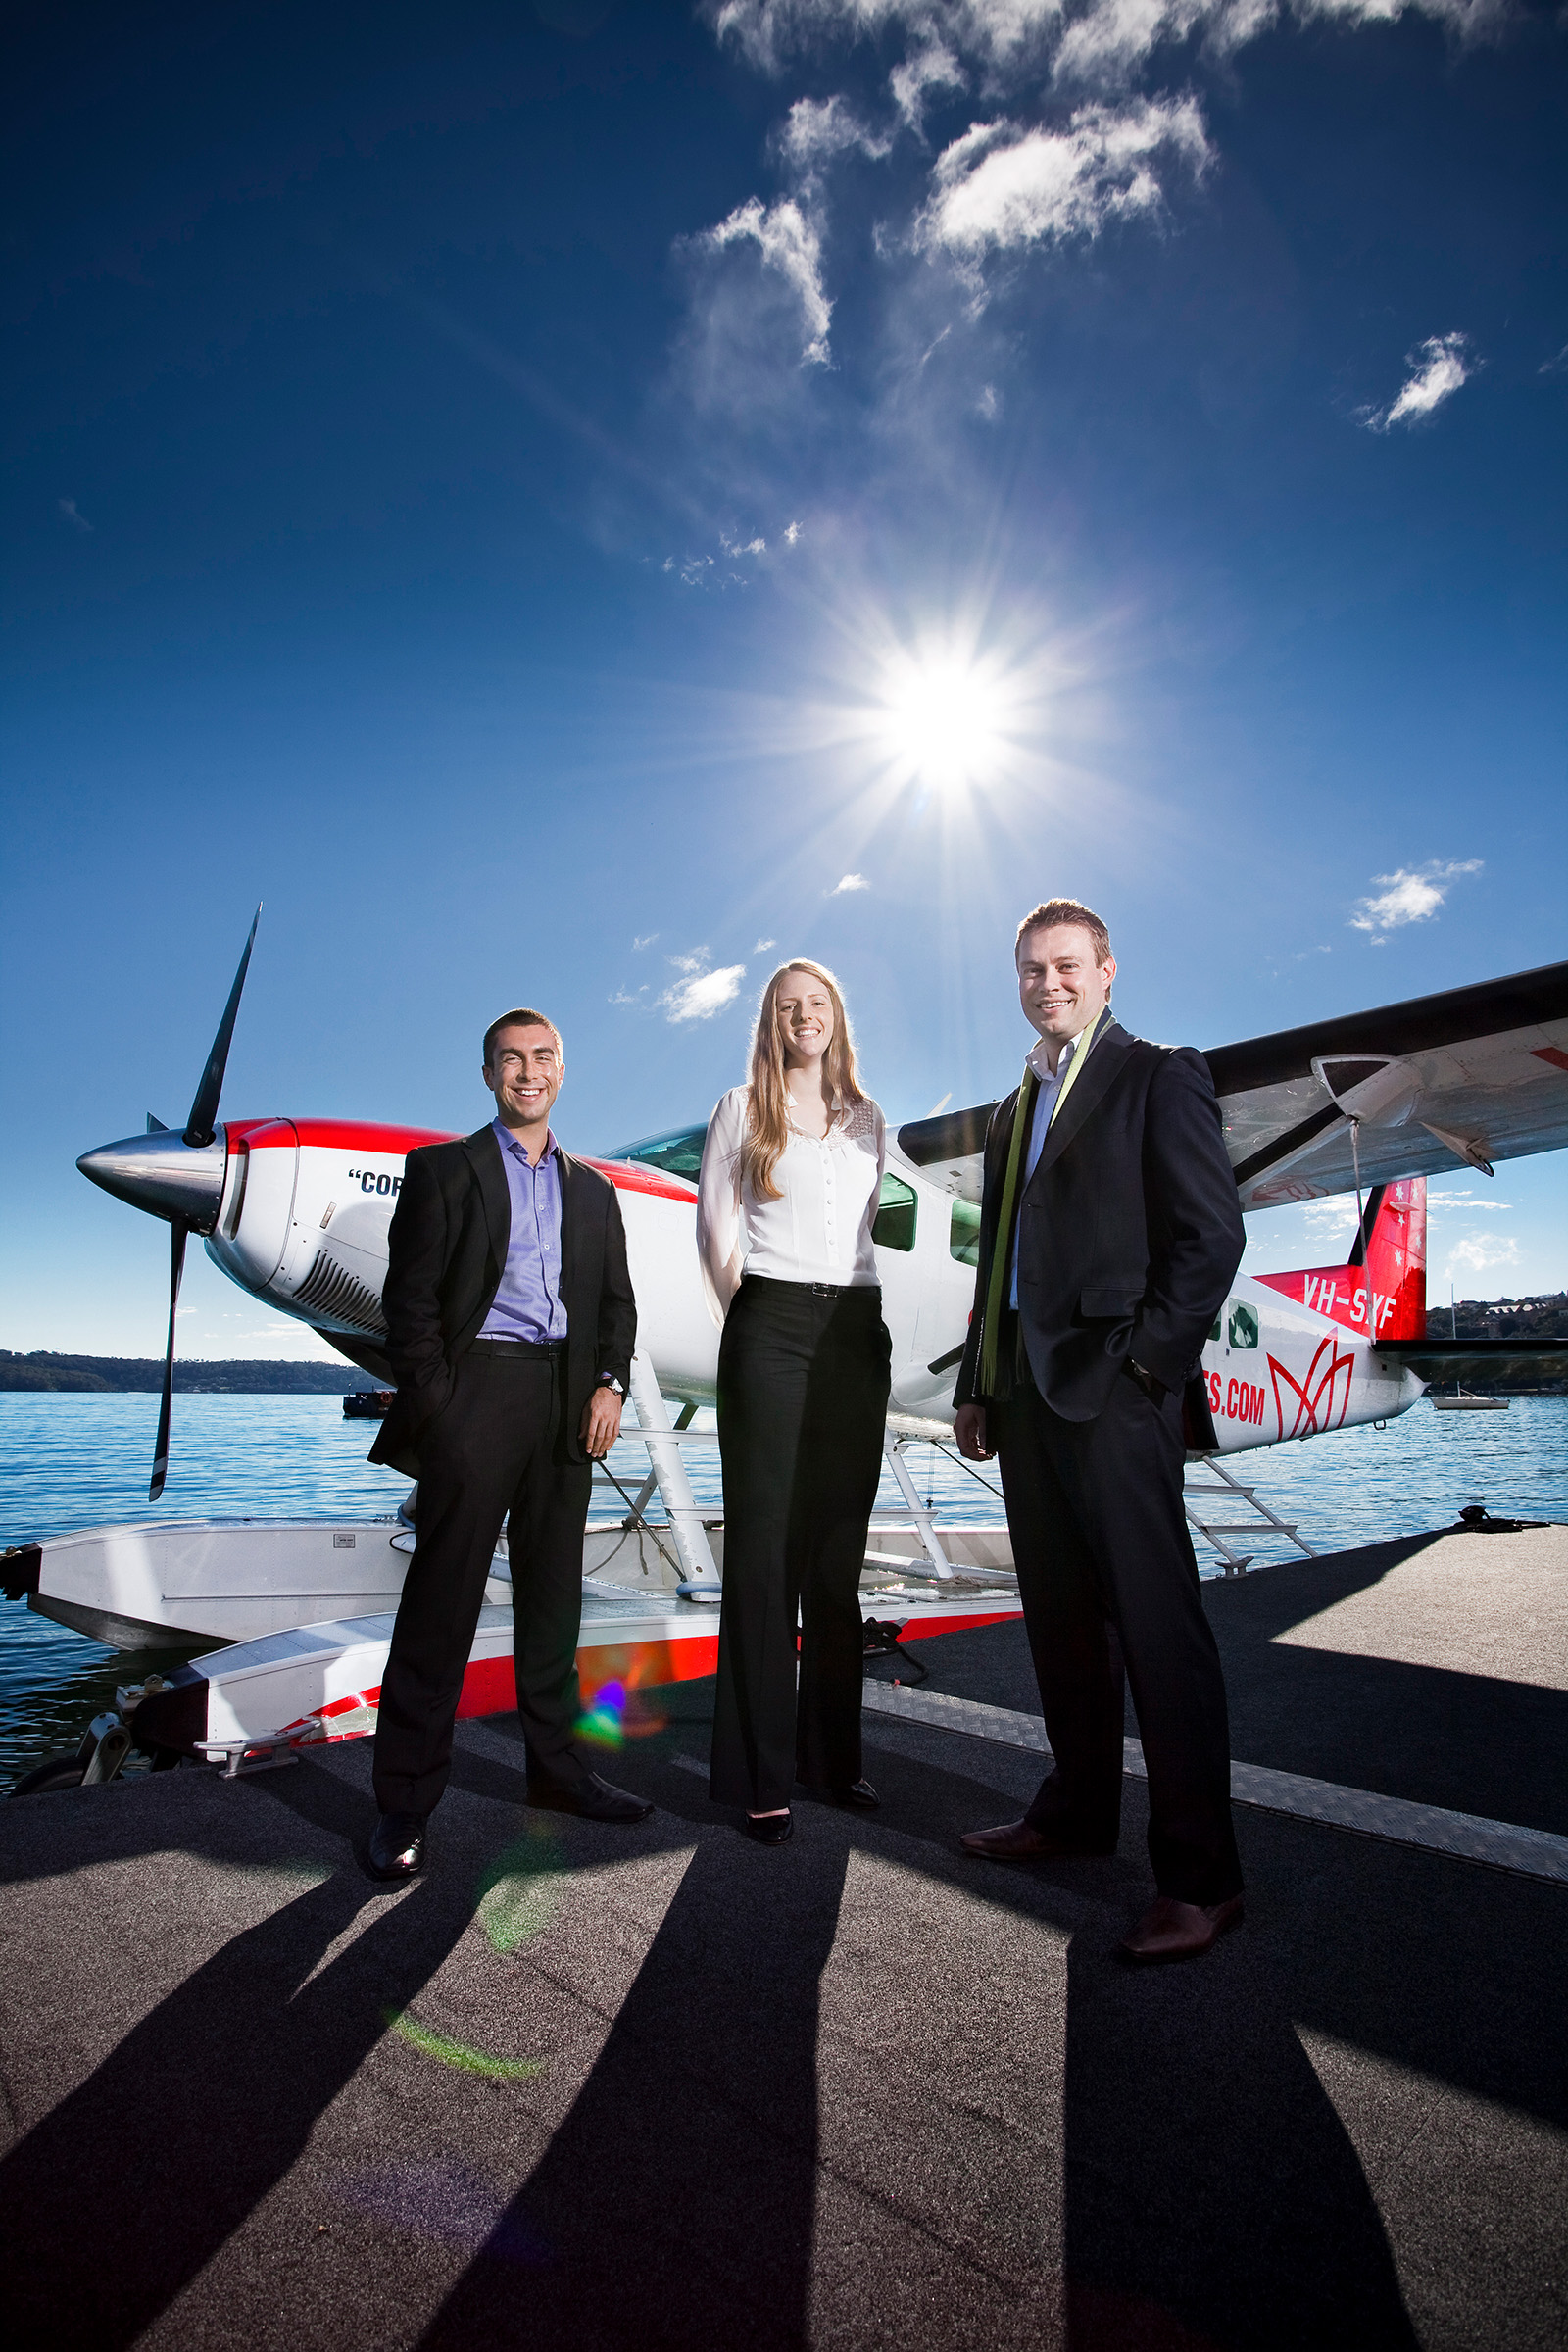 Editorial industry location photography of 3 people on wharf with seaplane on the water in the background